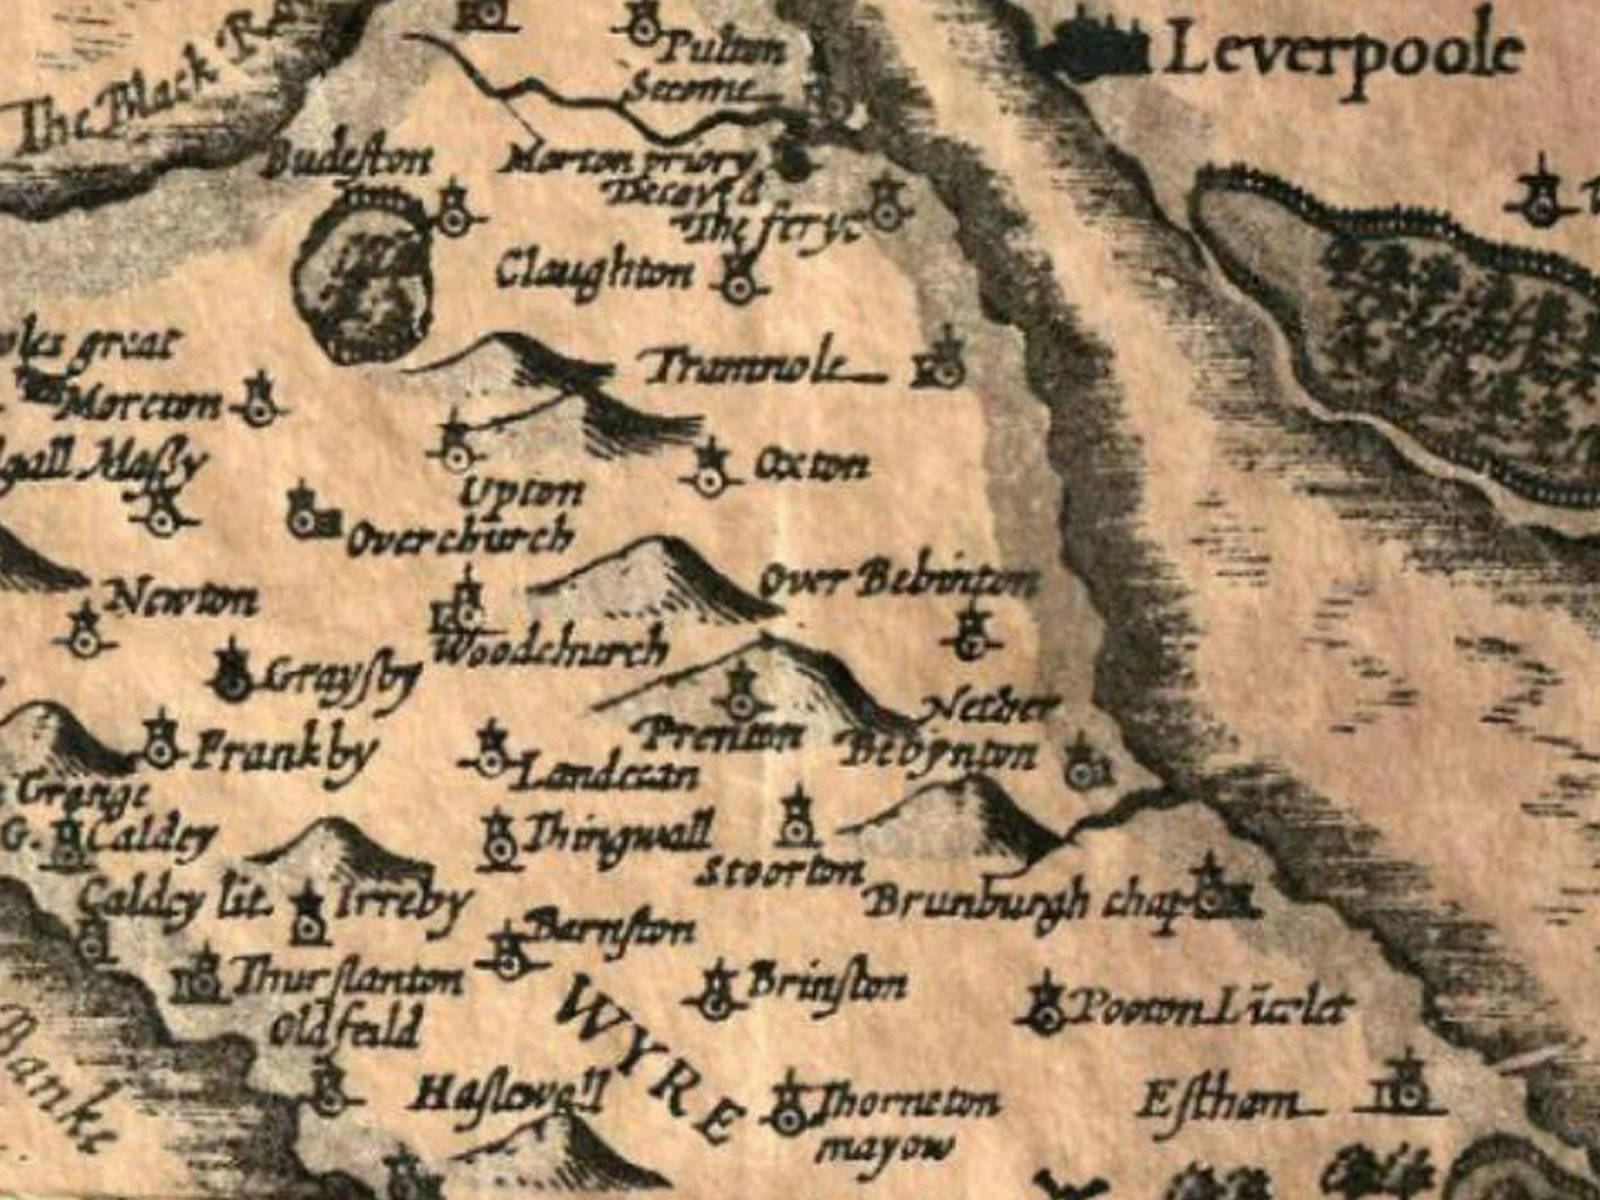 Map of the Wirral. 1611